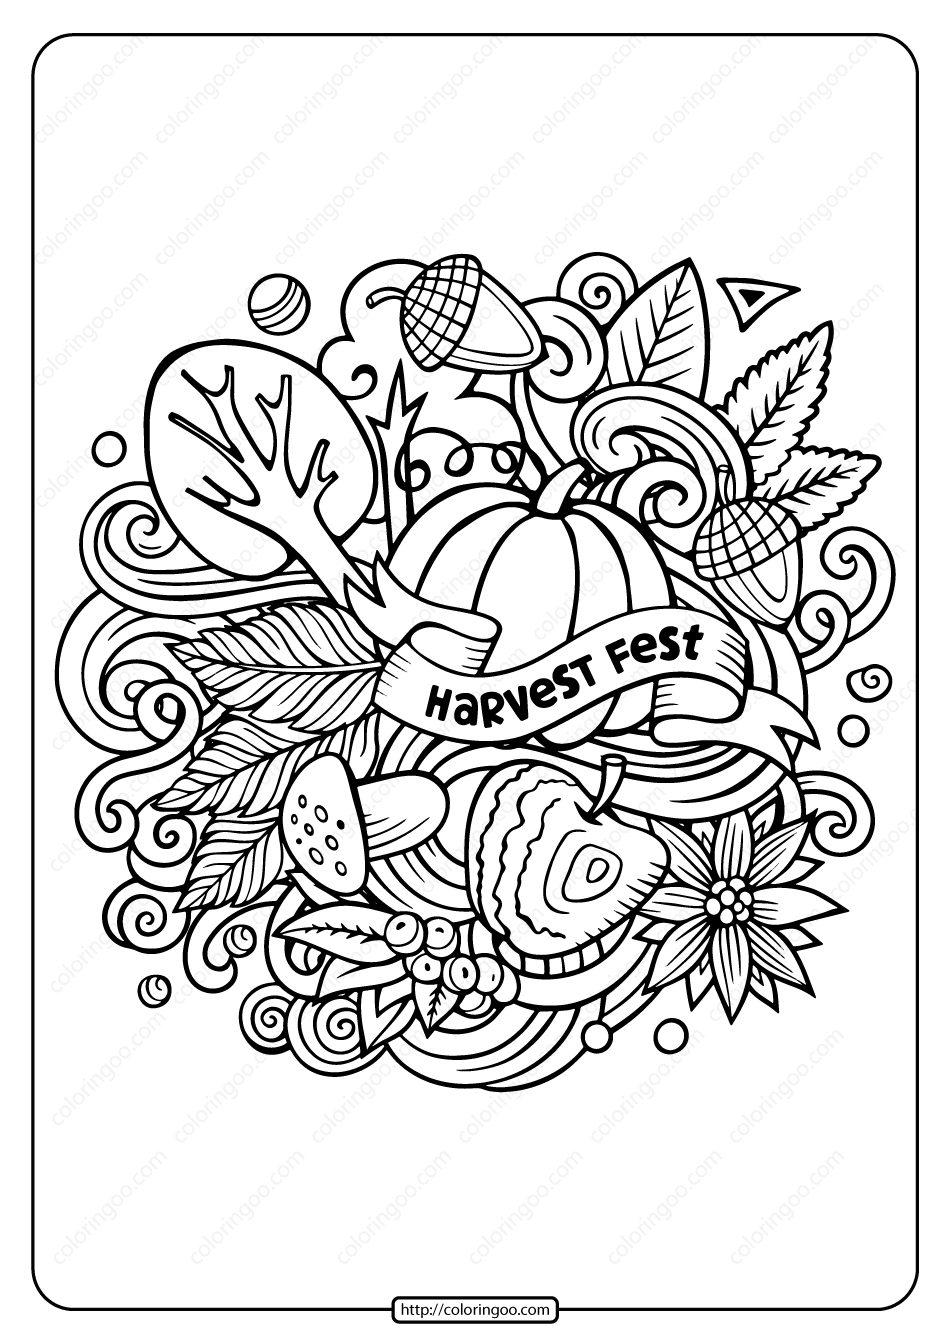 Printable Harvest Fest Pdf Coloring Page